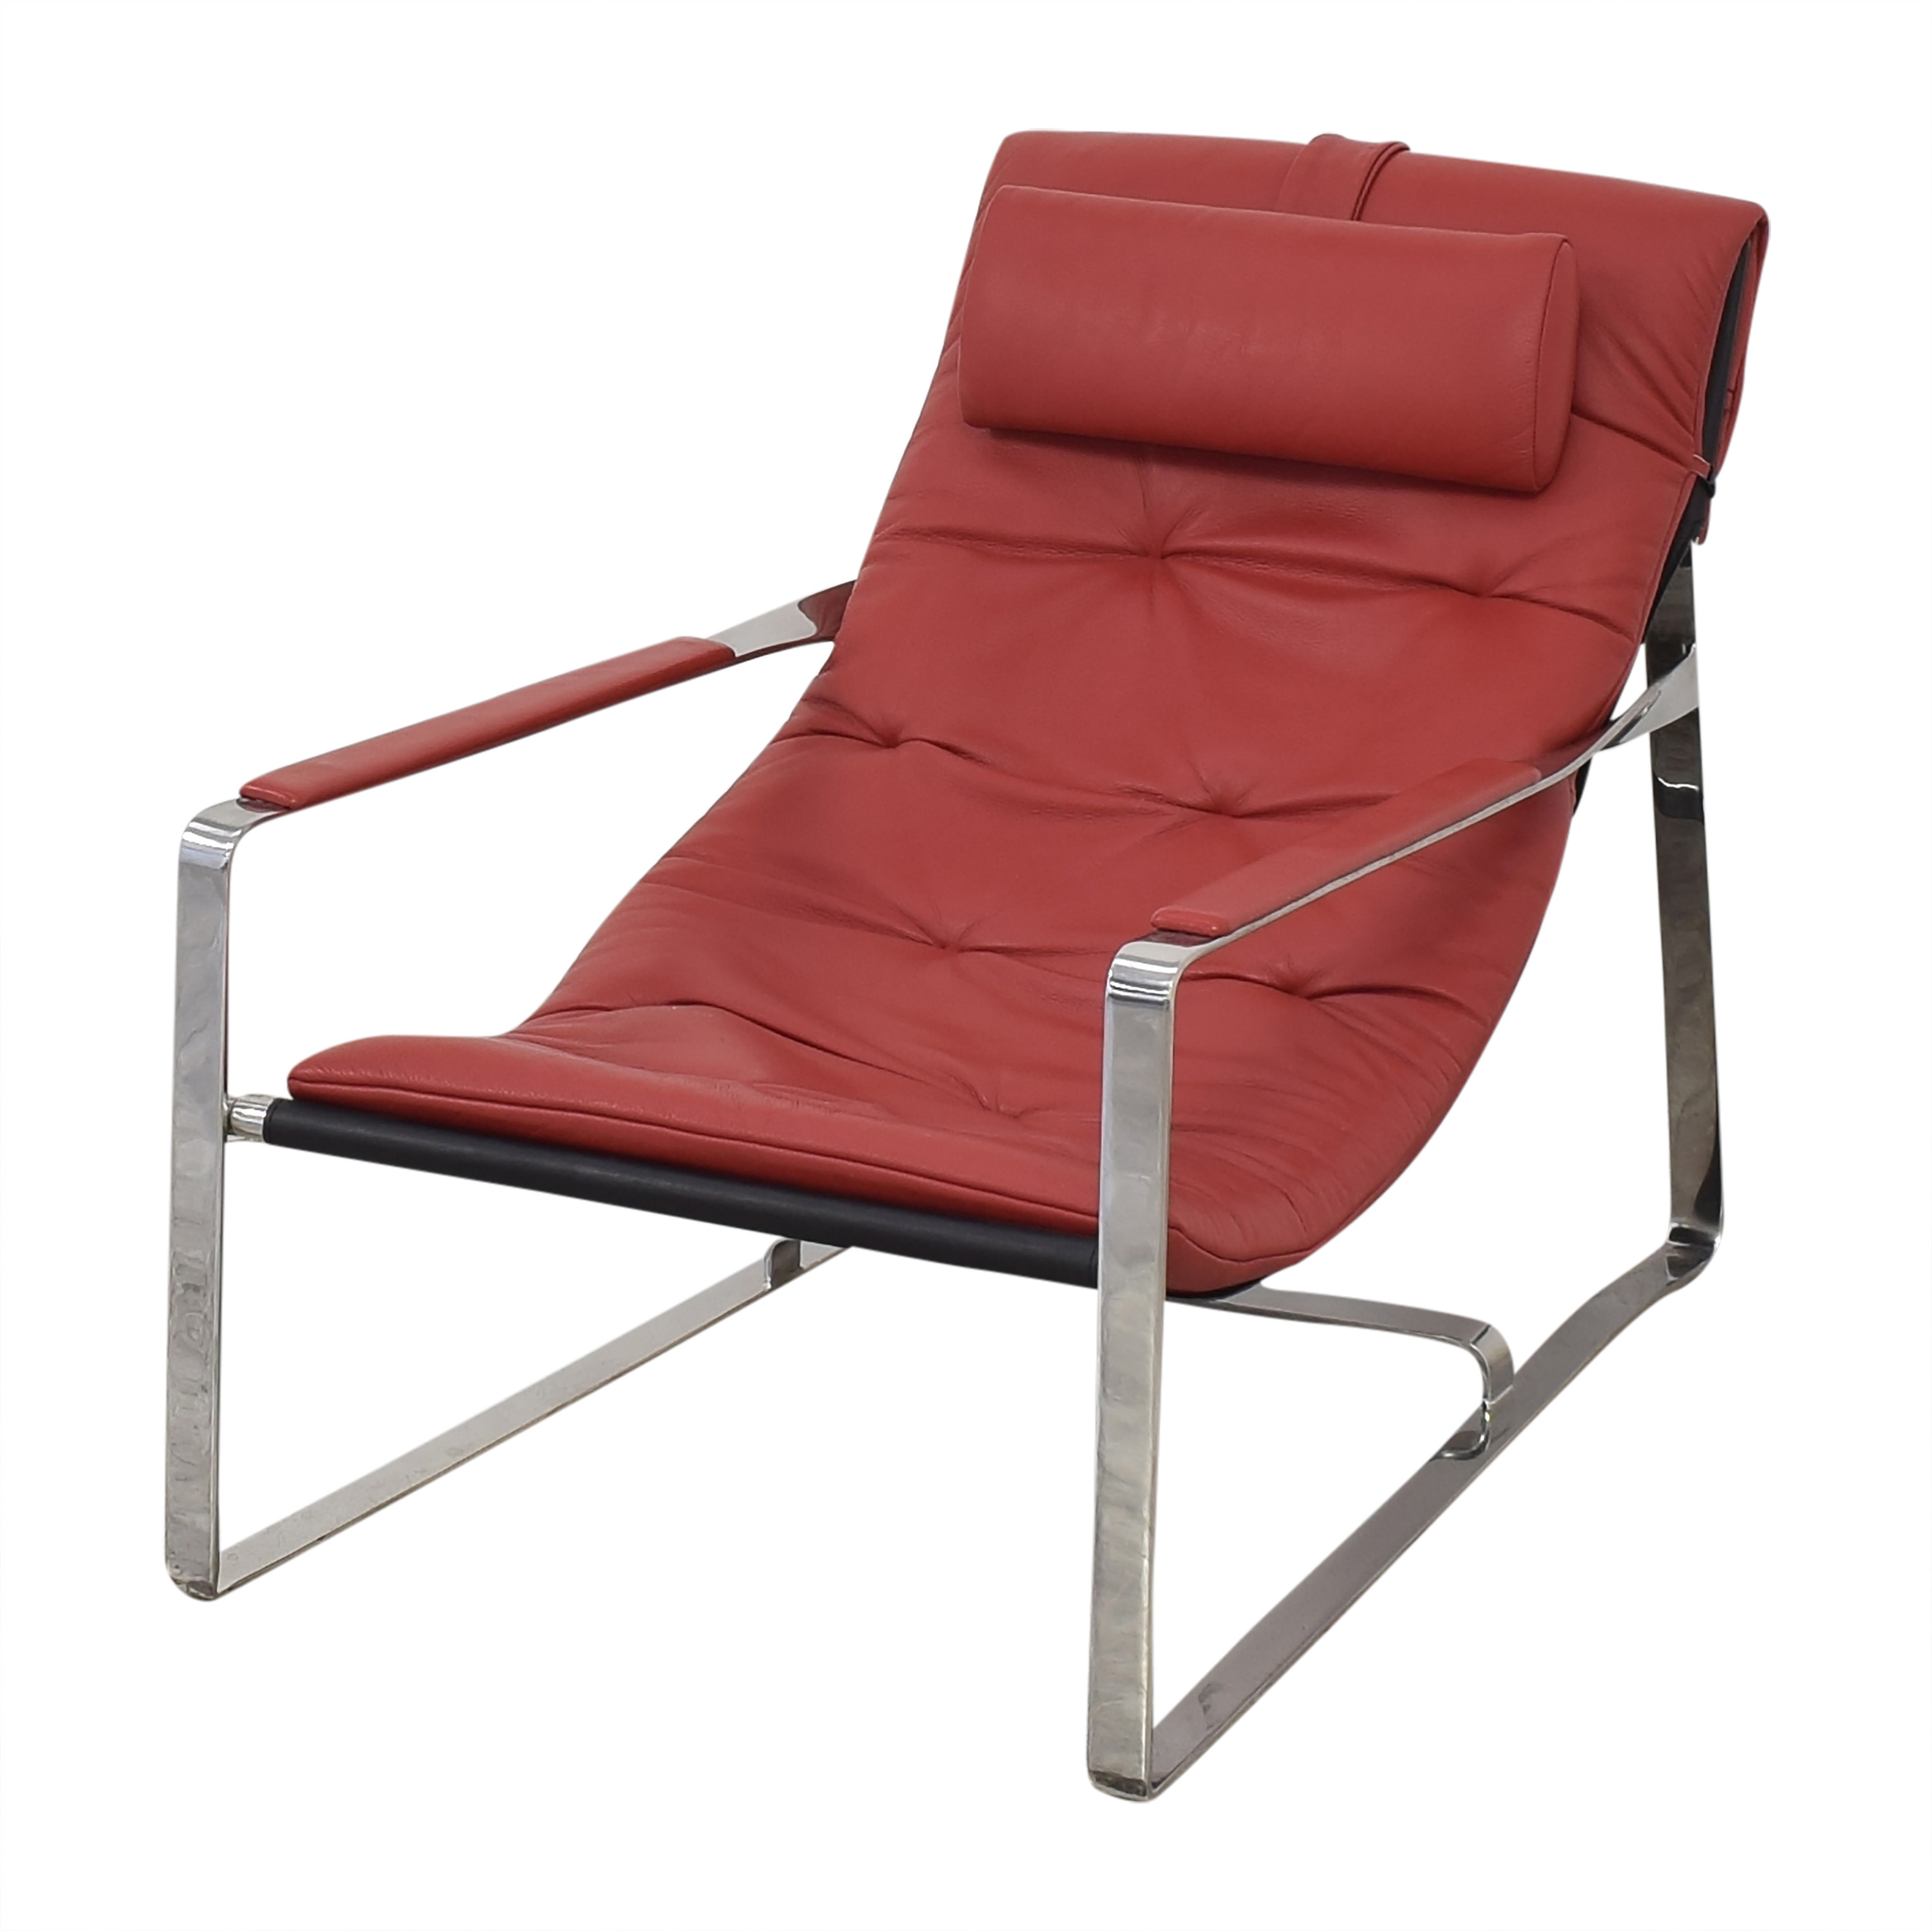 shop  Sling Style Lounge Chair with Ottoman online